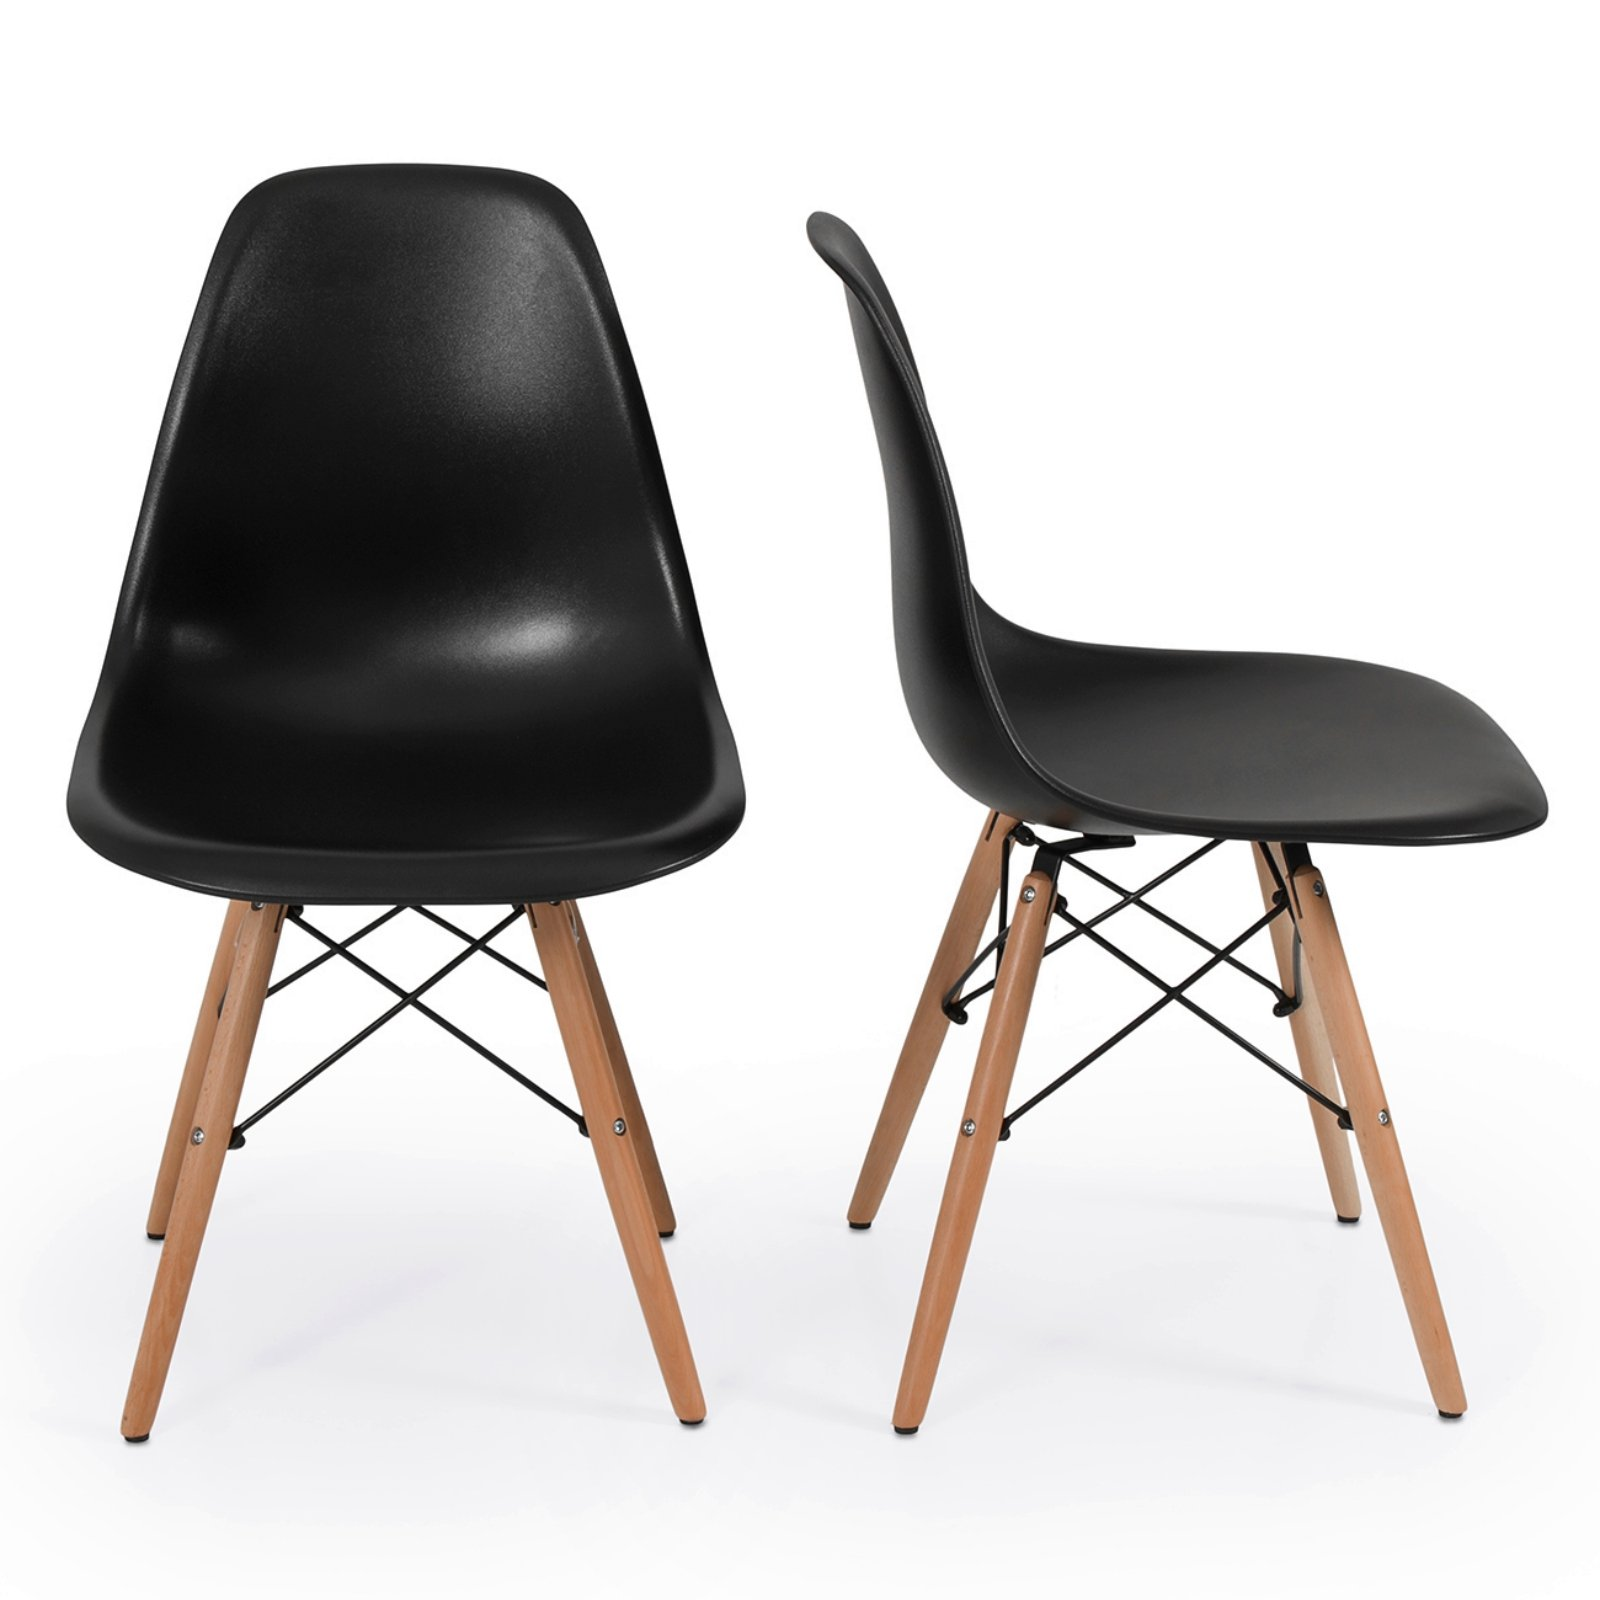 Set of 2 Retro Style Wood Base Mid Century Modern Shell Dining wooden Chair Dowel legs Black #566